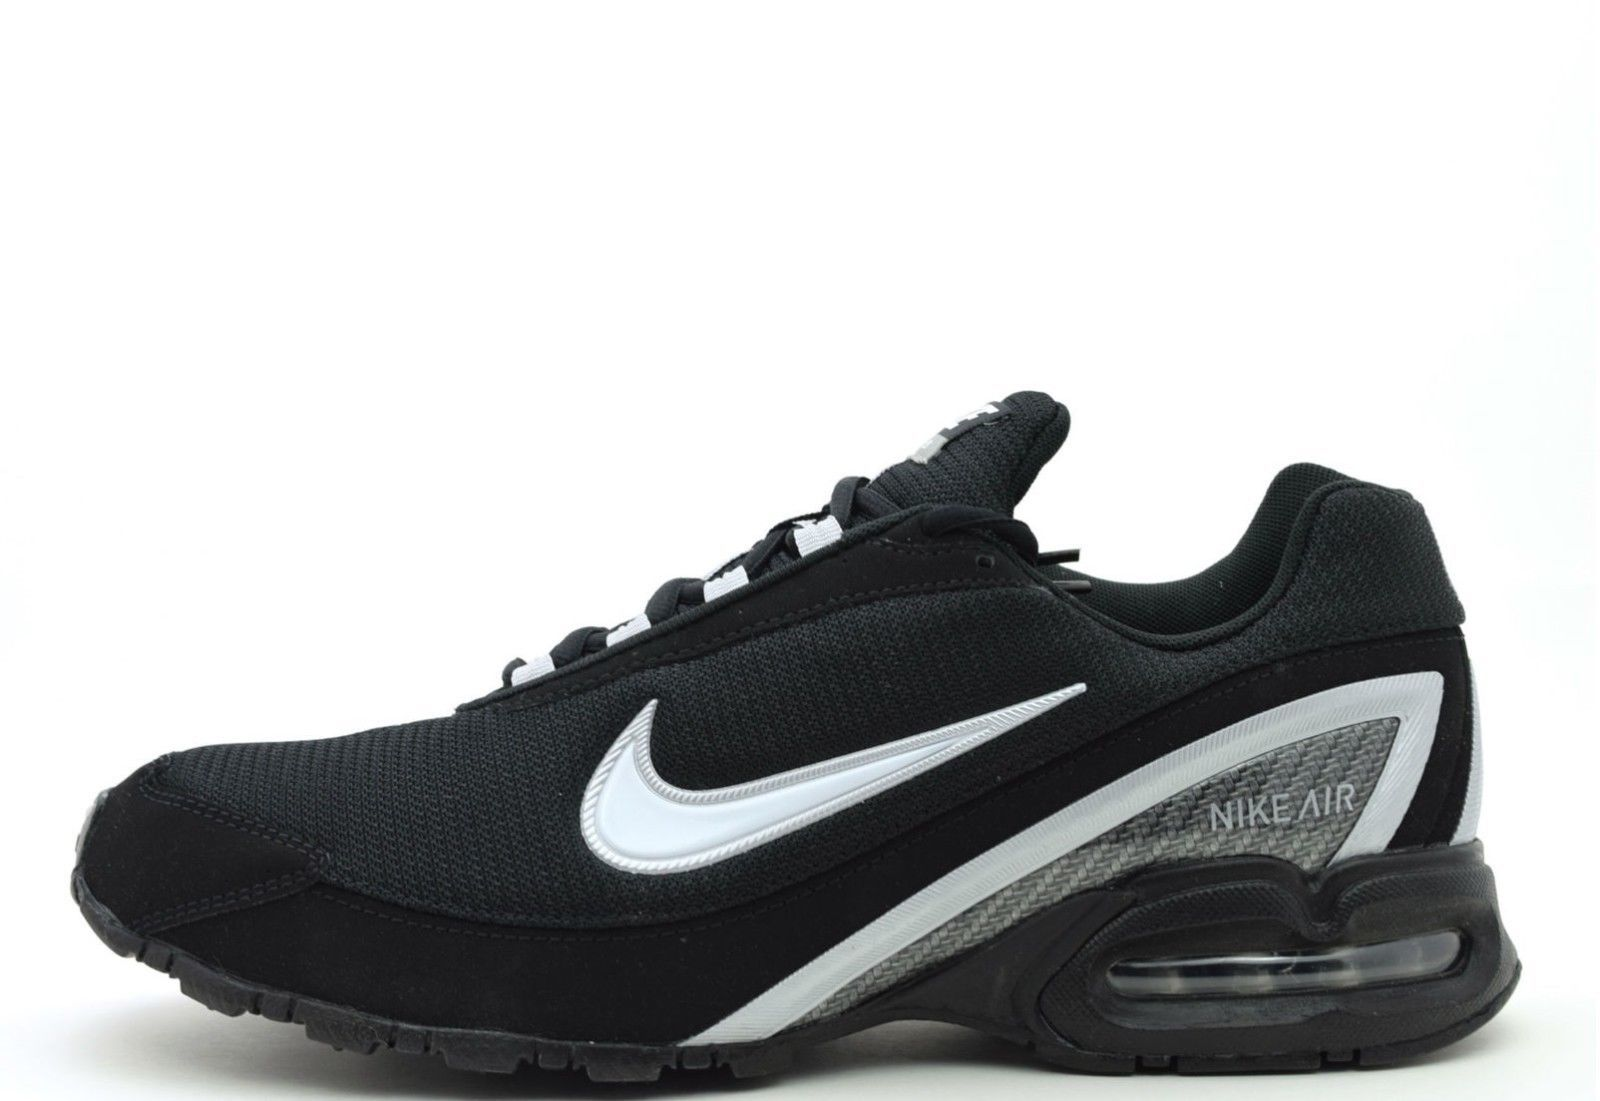 super popular f85b0 f791b Nike Men s Air Max Torch 3 Sneakers Size 7 to 13 us 319116 011